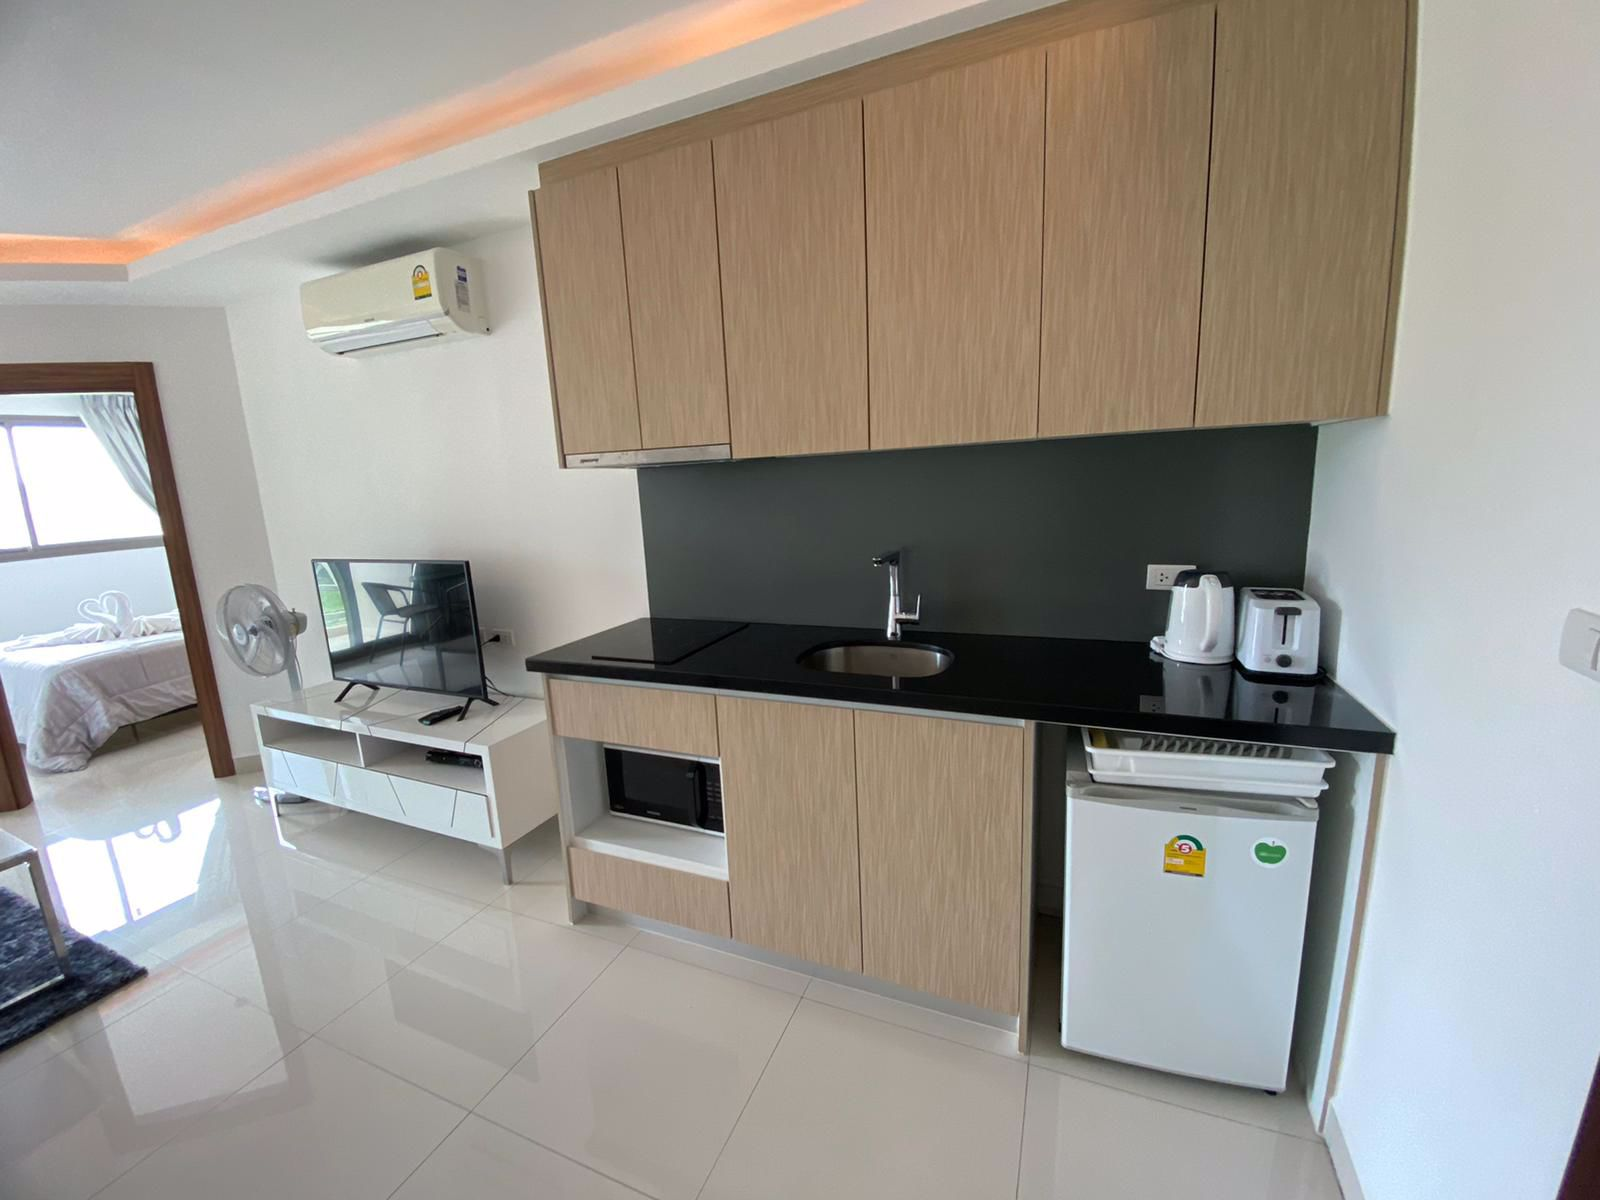 Picture of 1 Bedroom Apartment City View